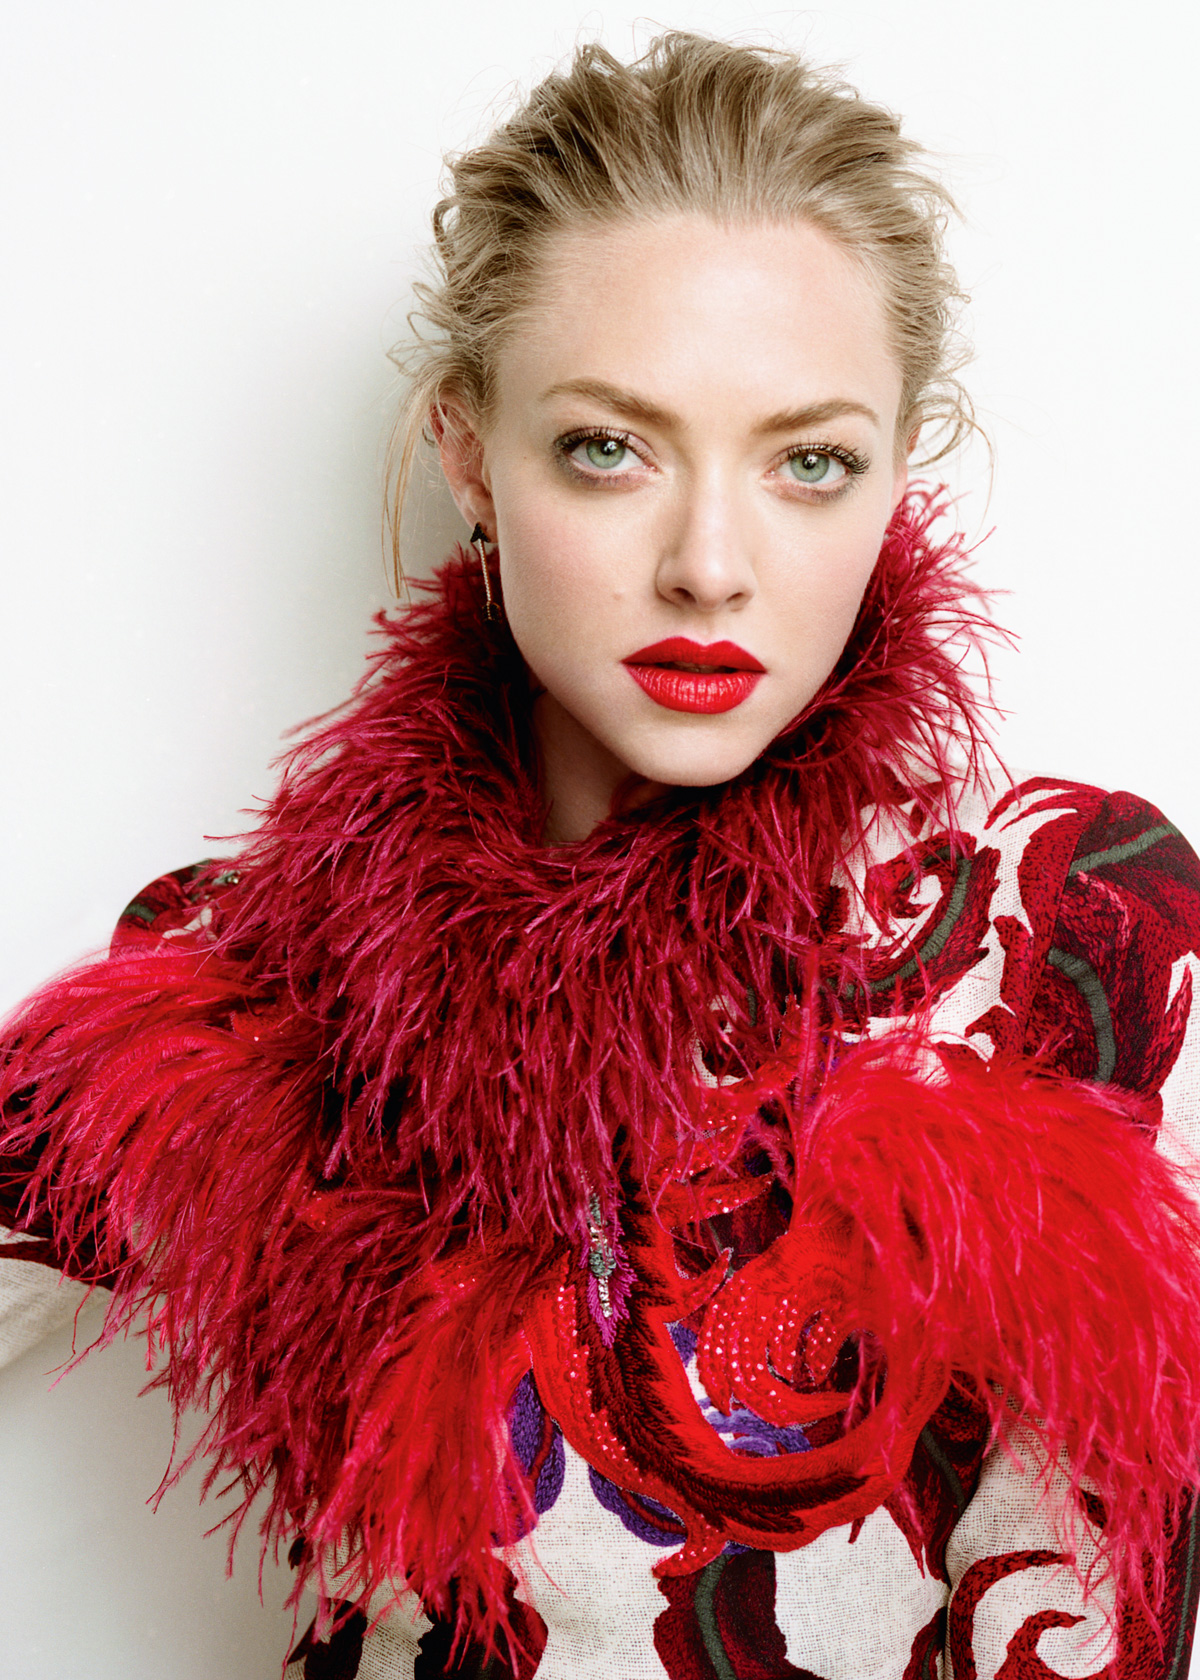 House Of Usher Amanda Seyfried by Matt Jones 05